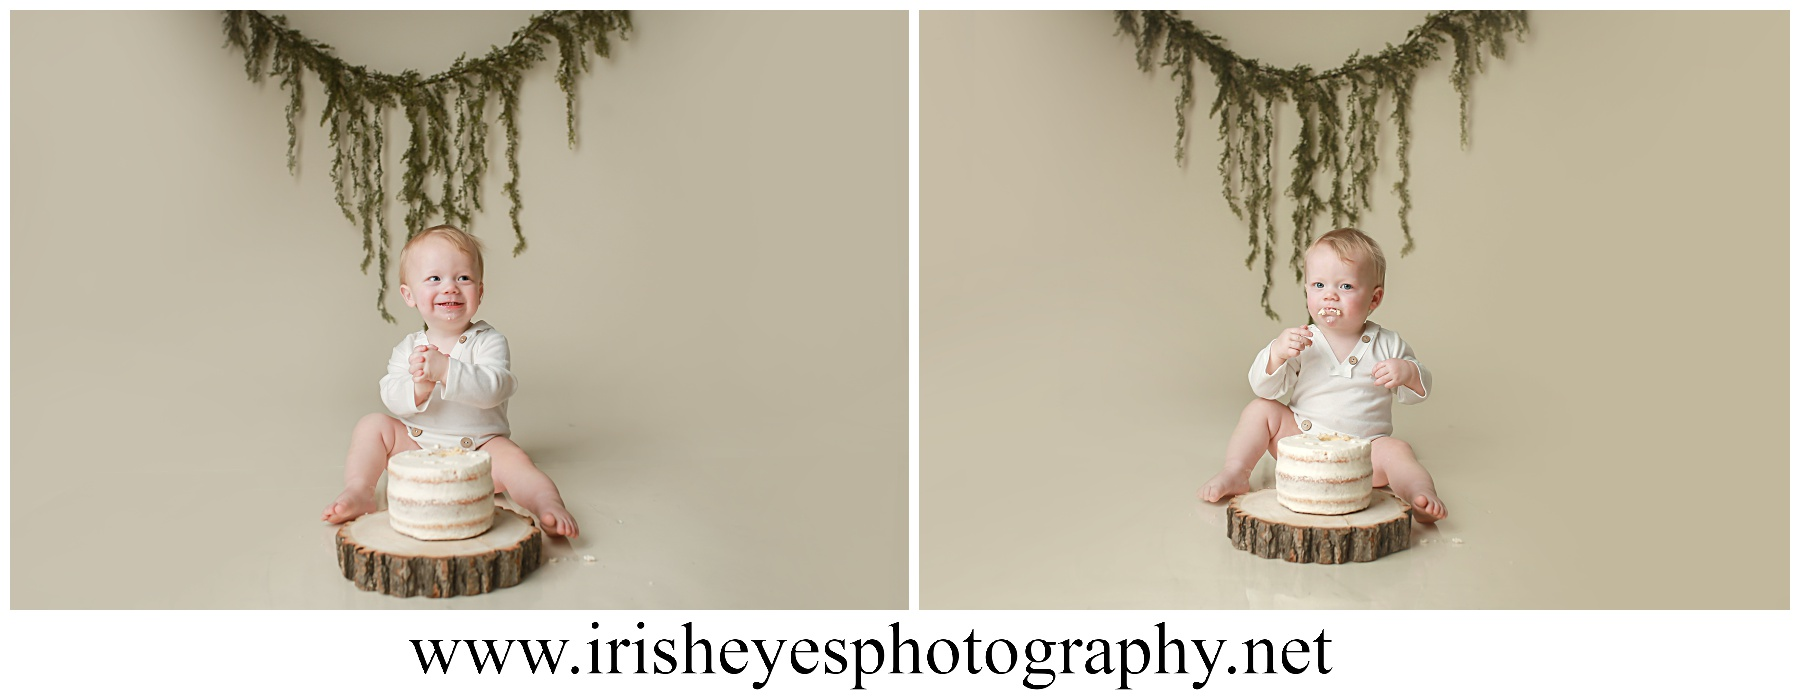 Gahanna Ohio Newborn Photographer_0215.jpg